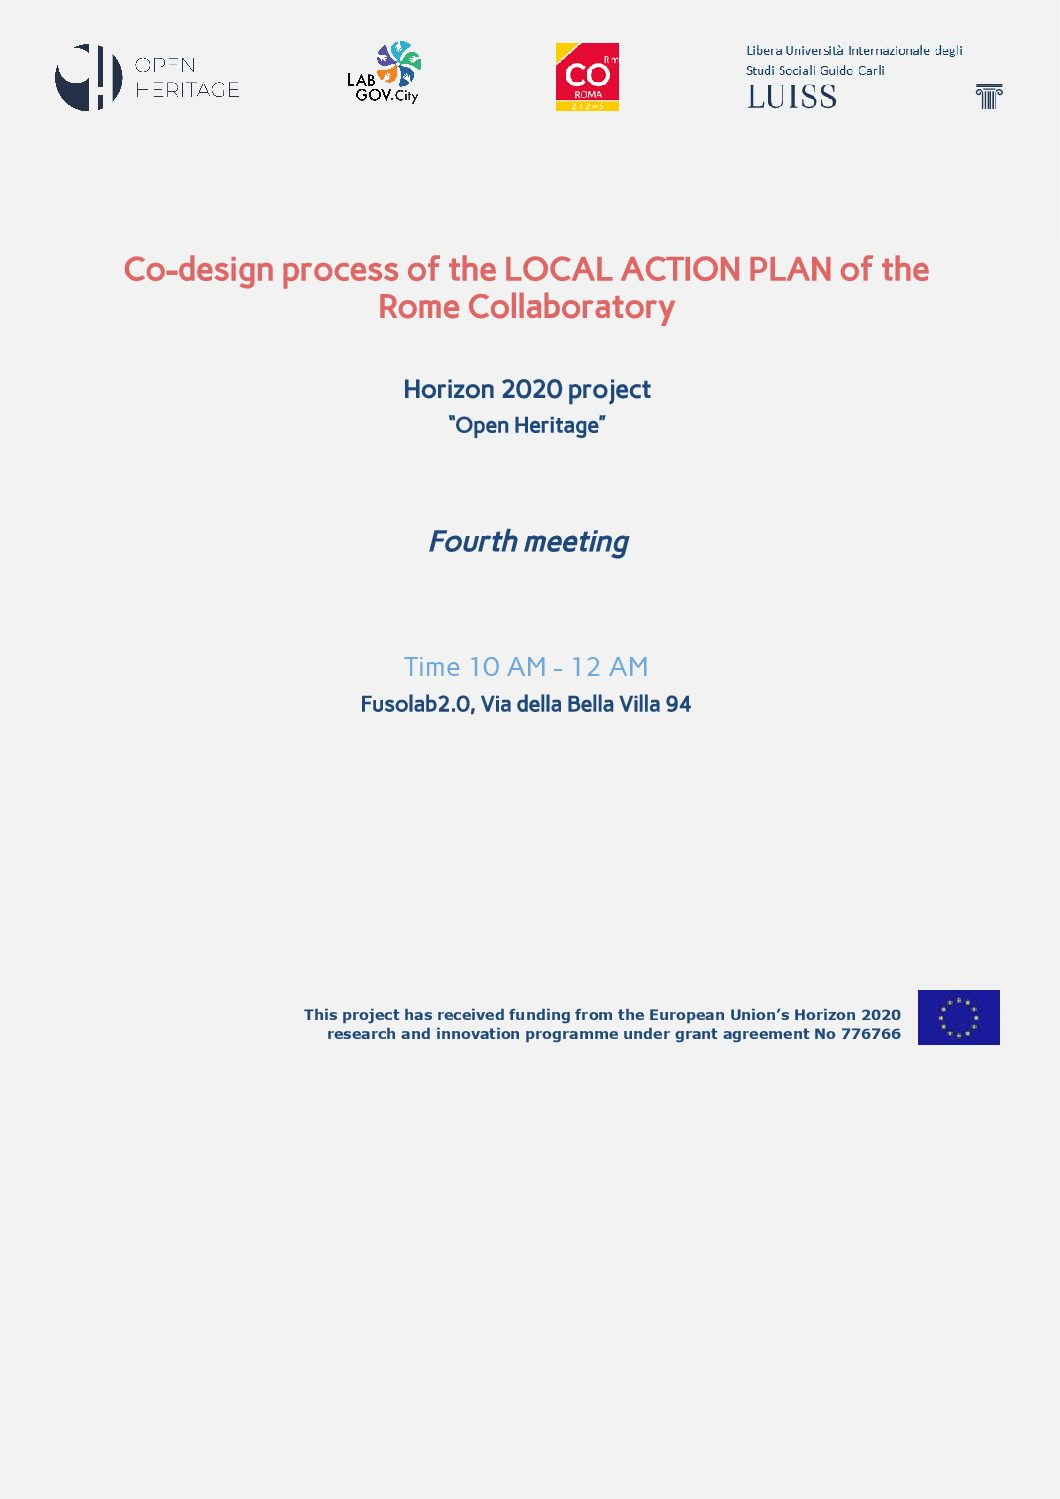 Save the date! The final Local Action Plan co-design session of the Rome Collaboratory is coming!